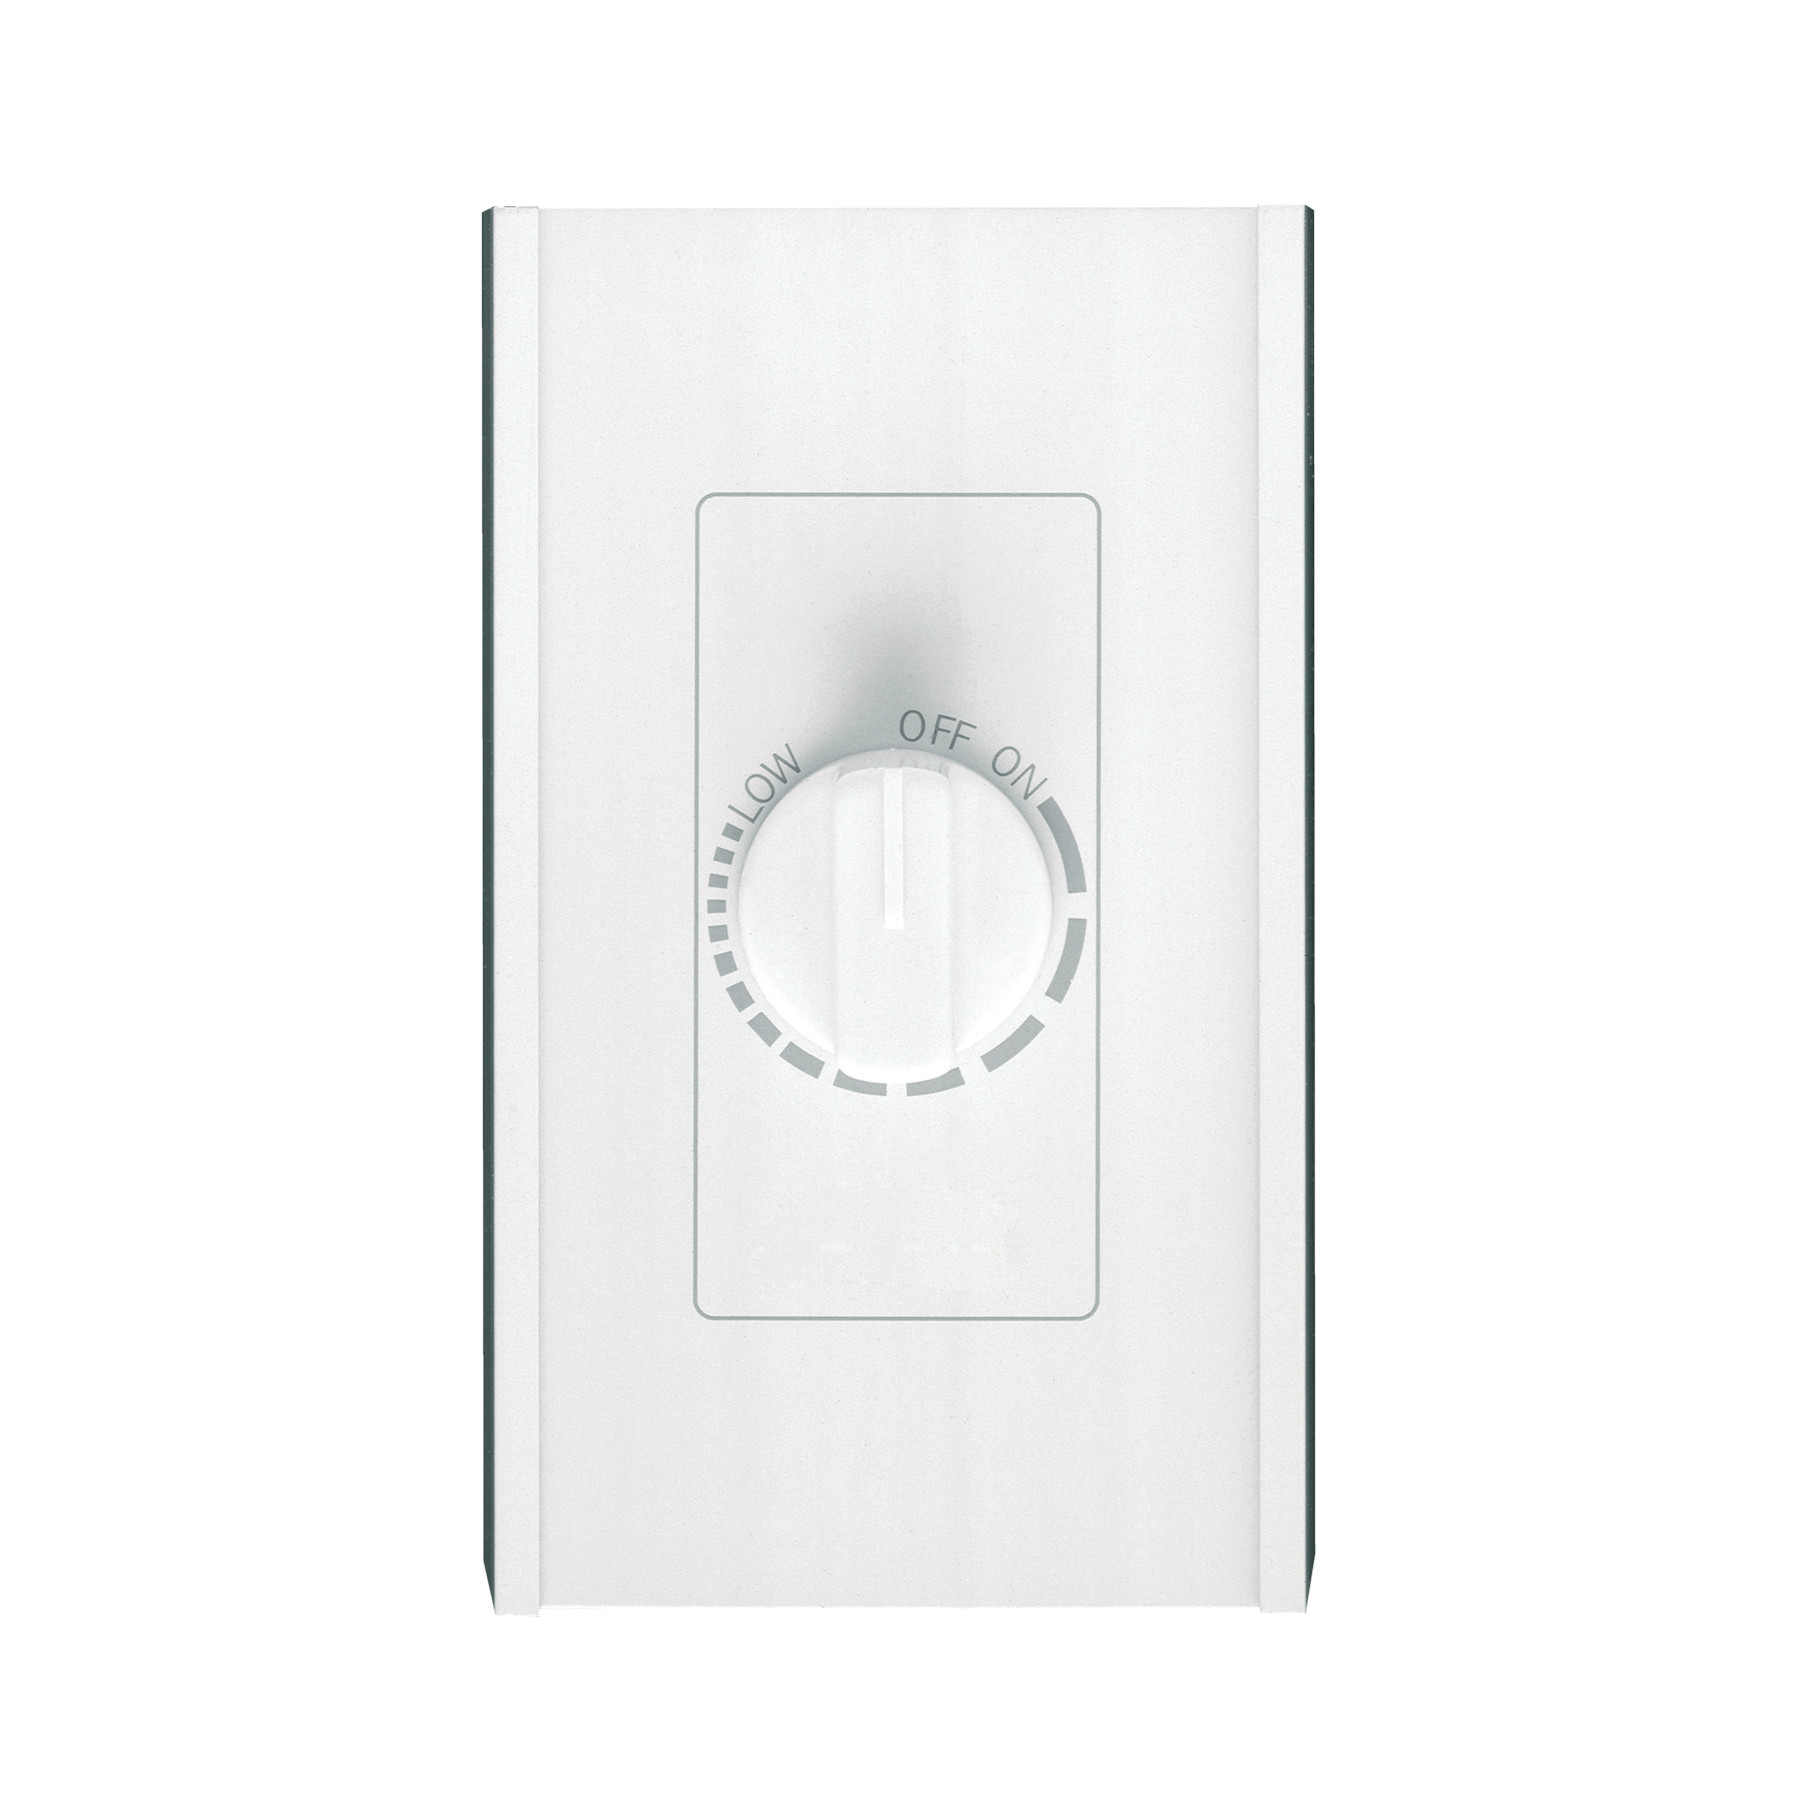 Broan-NuTone® Variable Speed Wall Control, White